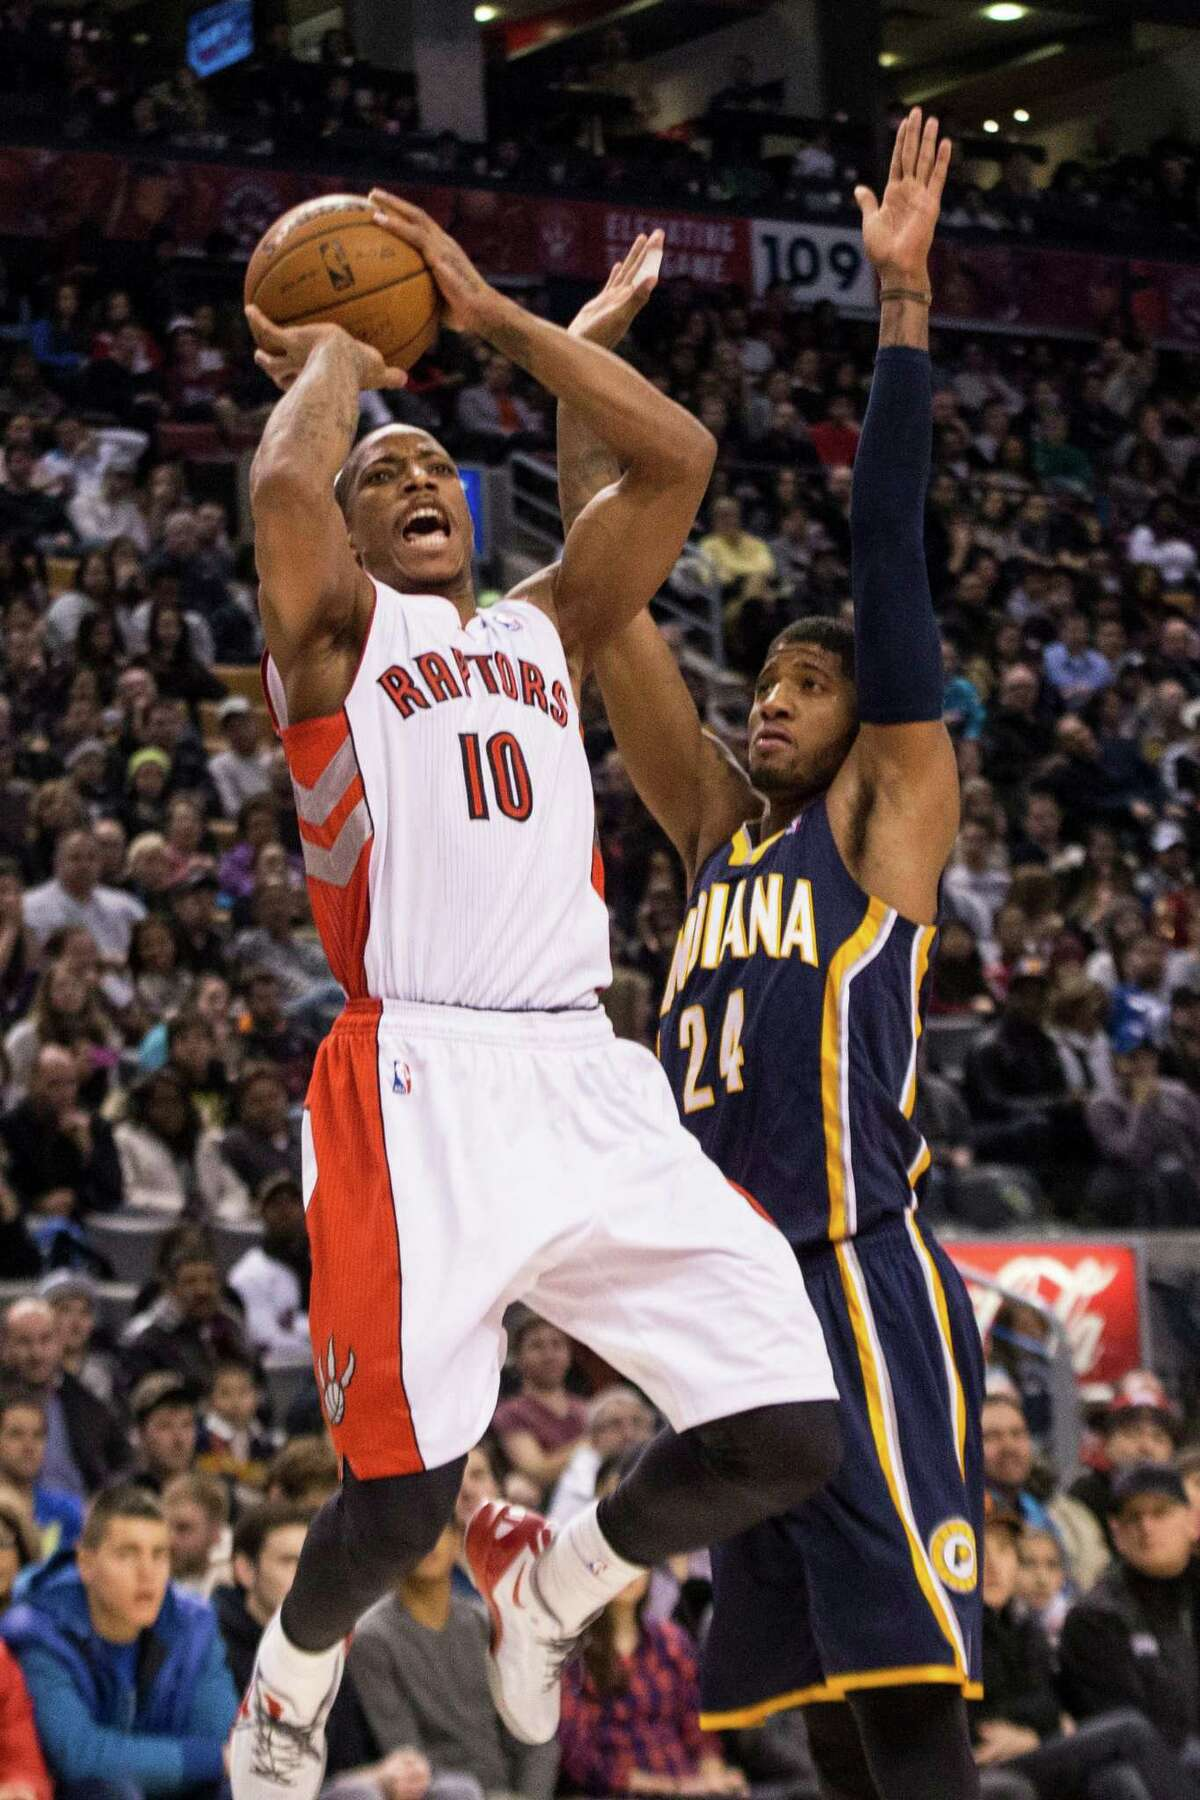 Toronto Raptors' DeMar DeRozan, left, shoots on Indiana Pacers' Paul George during the first half of an NBA basketball game in Toronto on Wednesday, Jan. 1, 2014. (AP Photo/The Canadian Press, Chris Young) ORG XMIT: CHY103